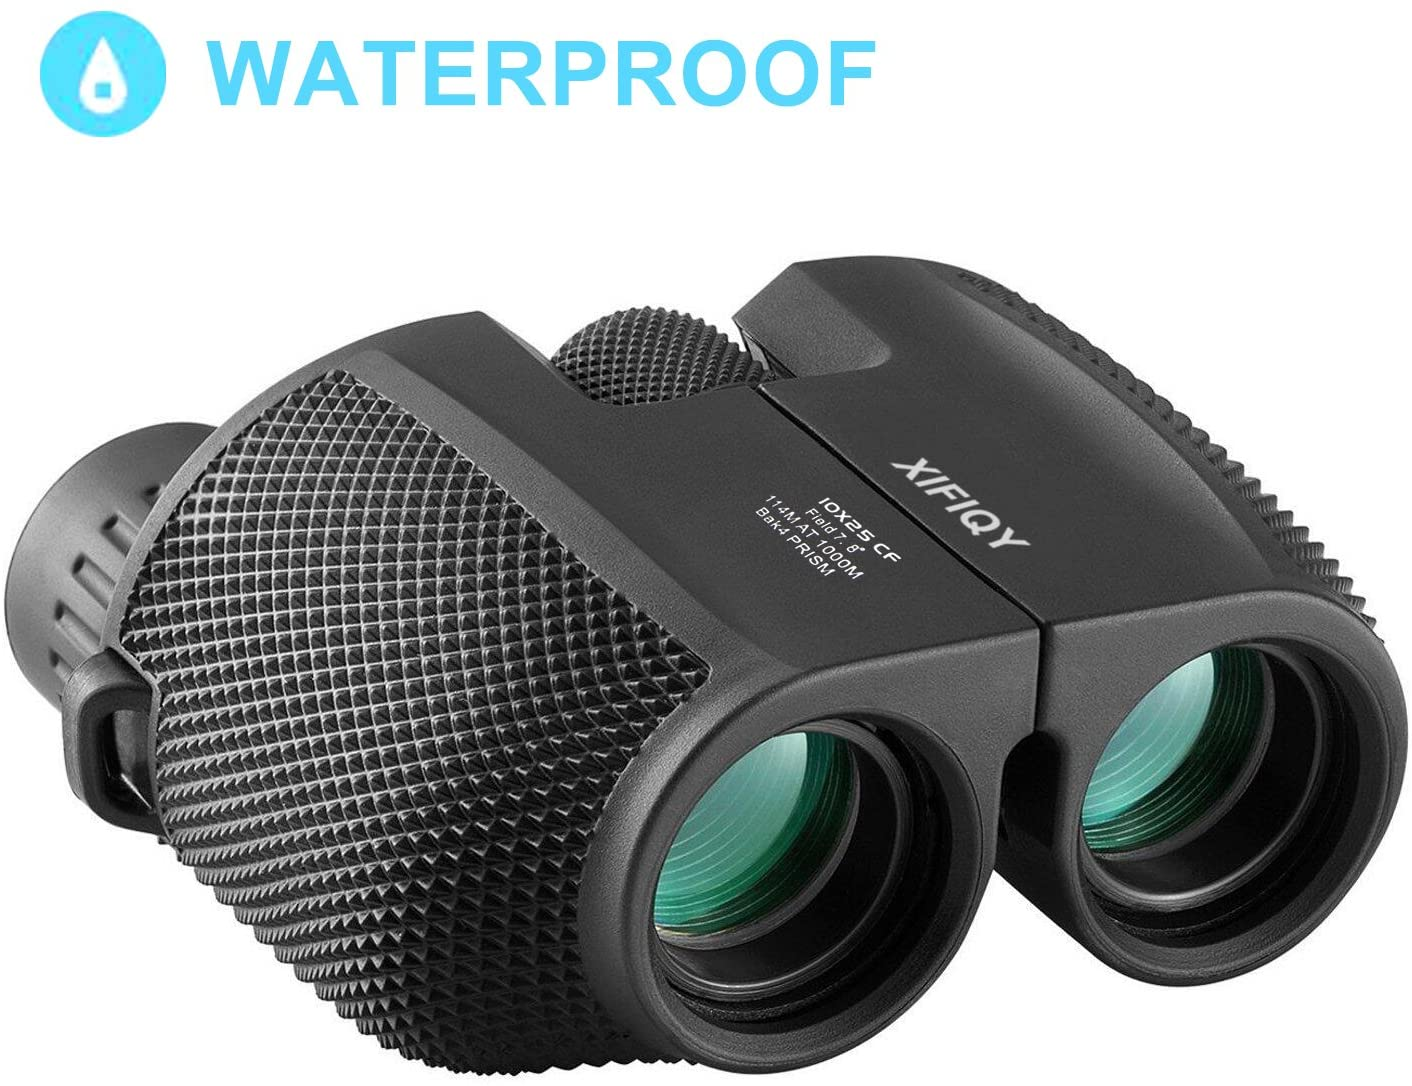 AOBETAK Compact Binoculars for Adults, 10x25 Pocket Size Mini Waterproof Binoculars with Powerful Folding, Small Lightweight Telescope with Cleaning Cloth and Carry Case for Adults Kids Bird Watching